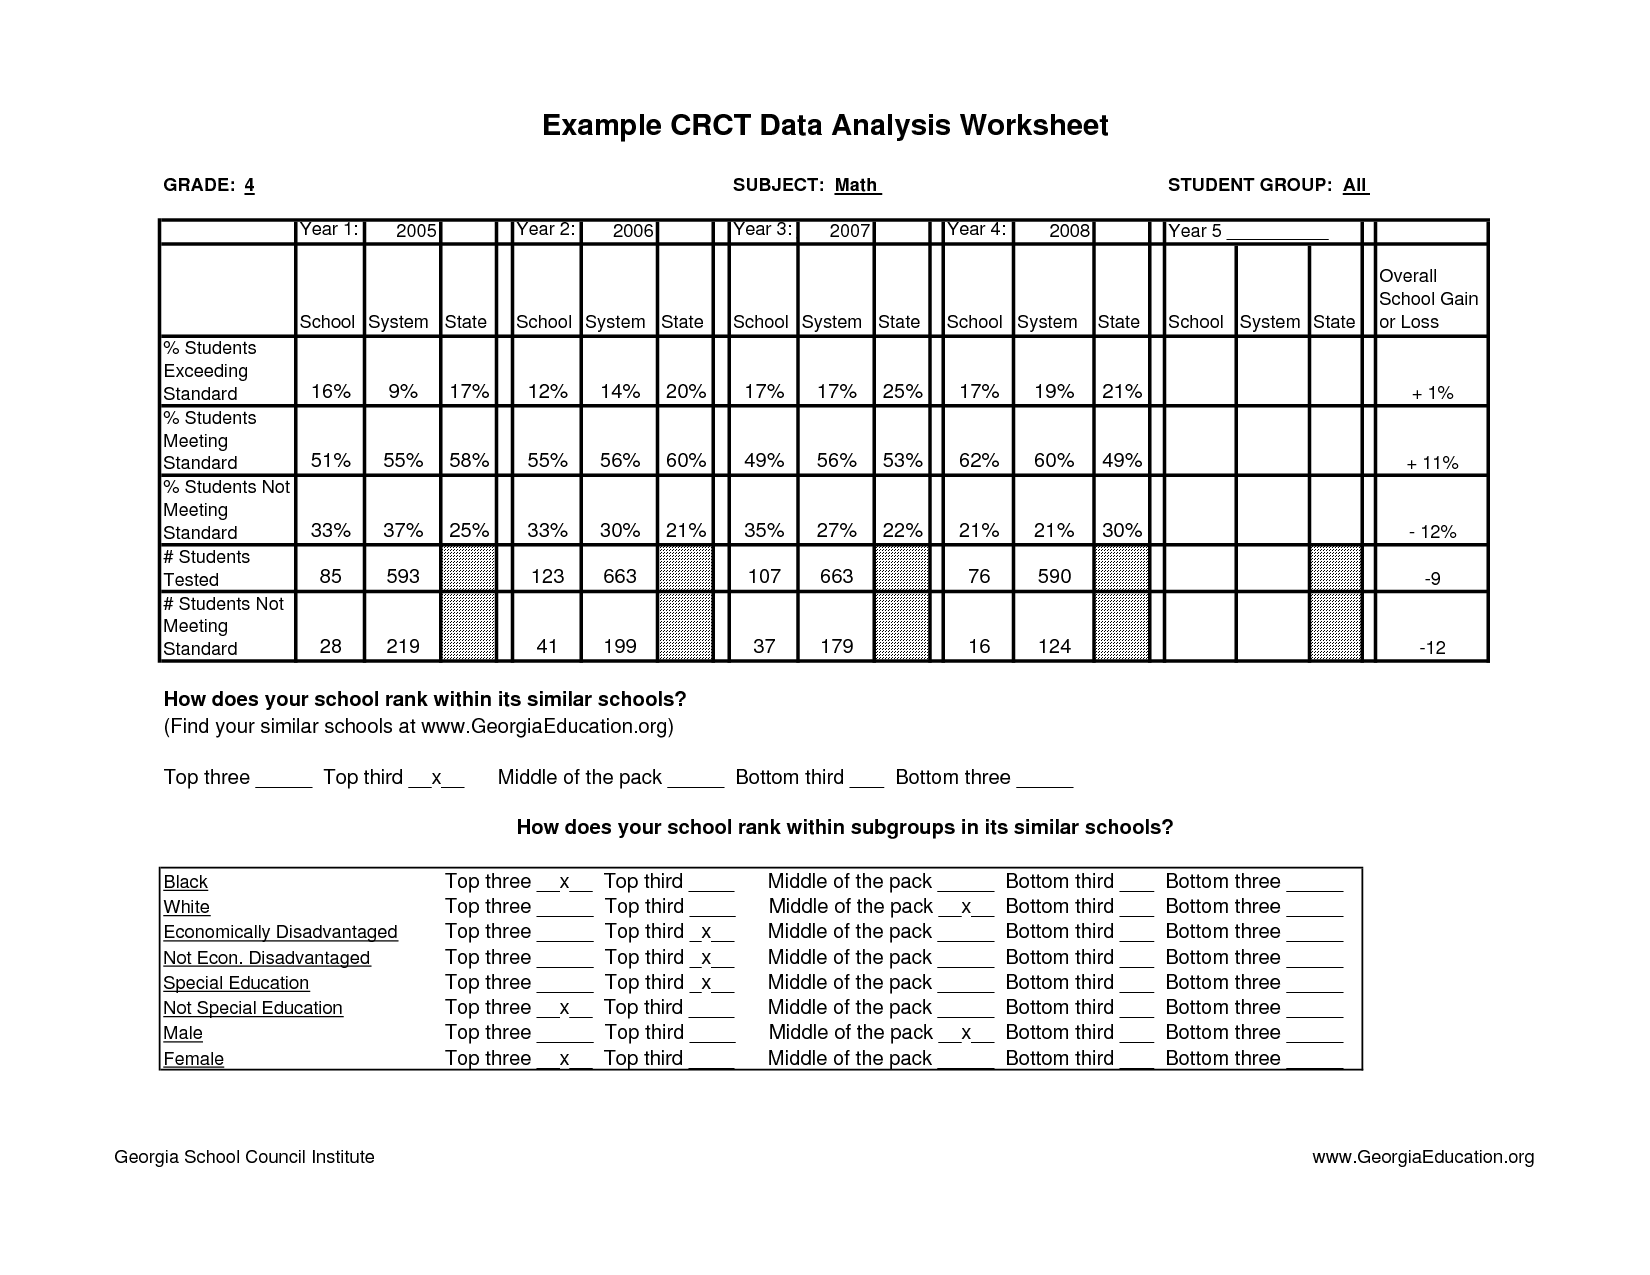 Worksheet Data Analysis Worksheets example crct data analysis worksheet 7 worksheets scientific worksheet